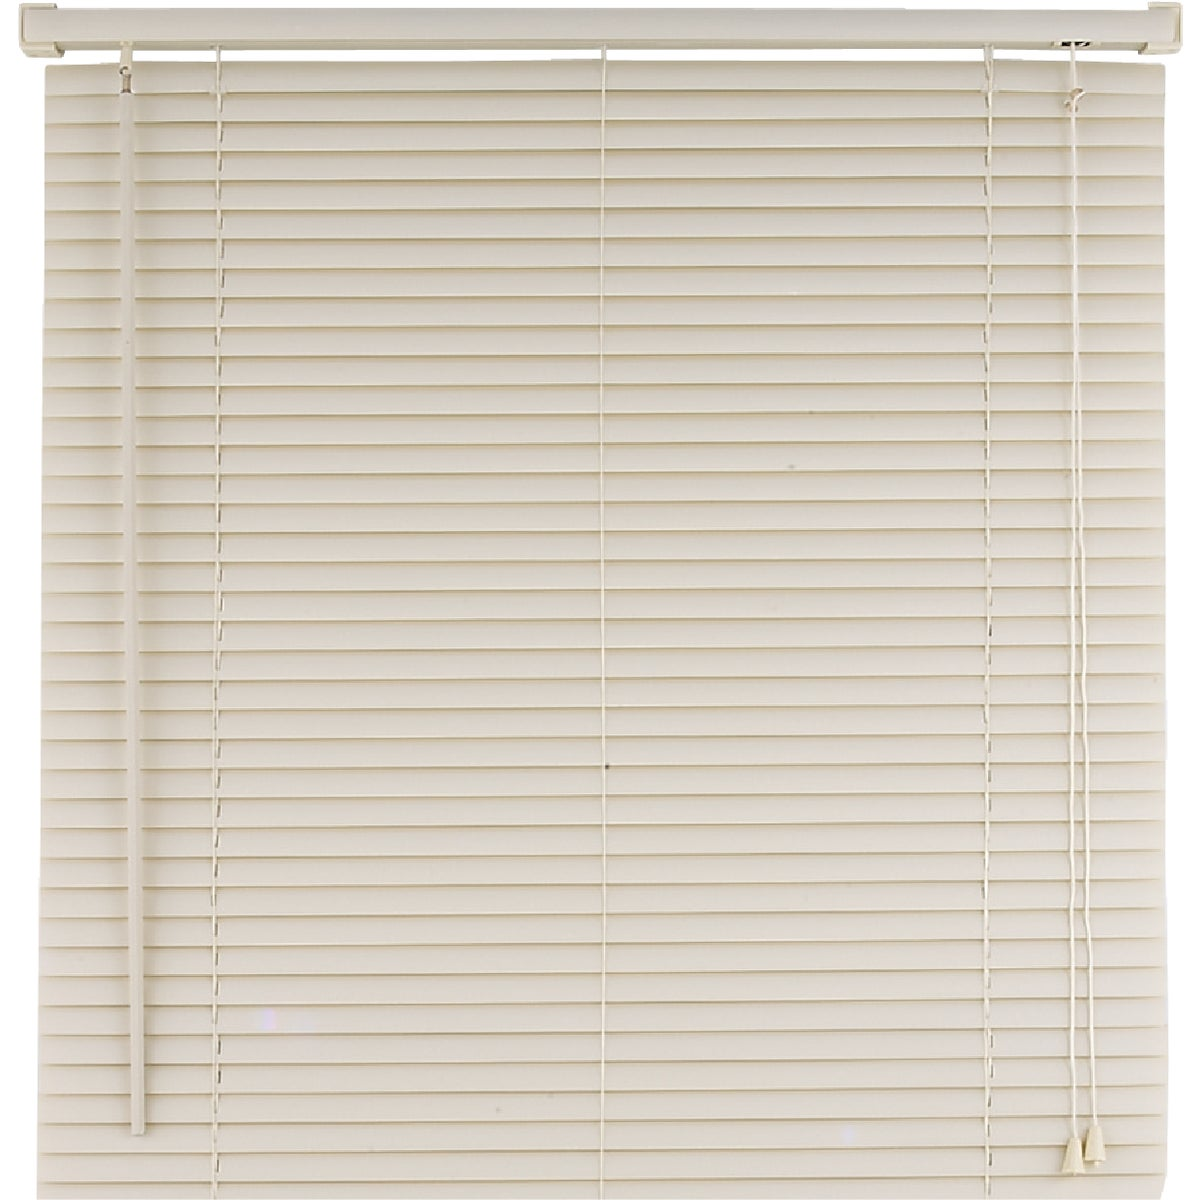 72X64 ALABASTER BLIND - 15232 by Lotus Wind Incom